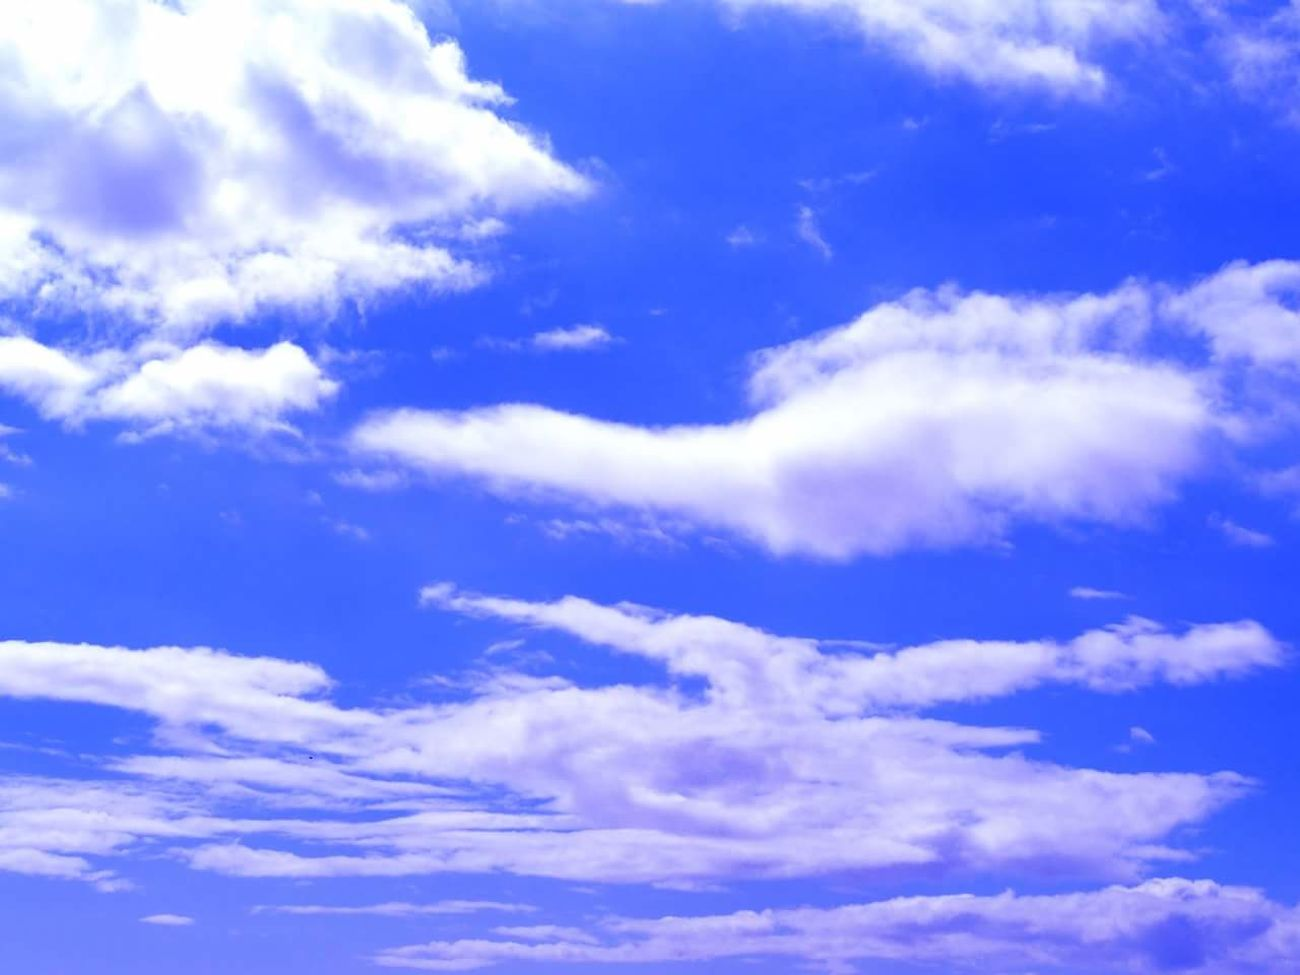 Blue Sky Cloud - Sky Heaven Nature Backgrounds Cloudscape White Color Weather Beauty In Nature Fluffy No People Outdoors Silence Cumulus Cloud Softness Scenics Dramatic Sky Abstract